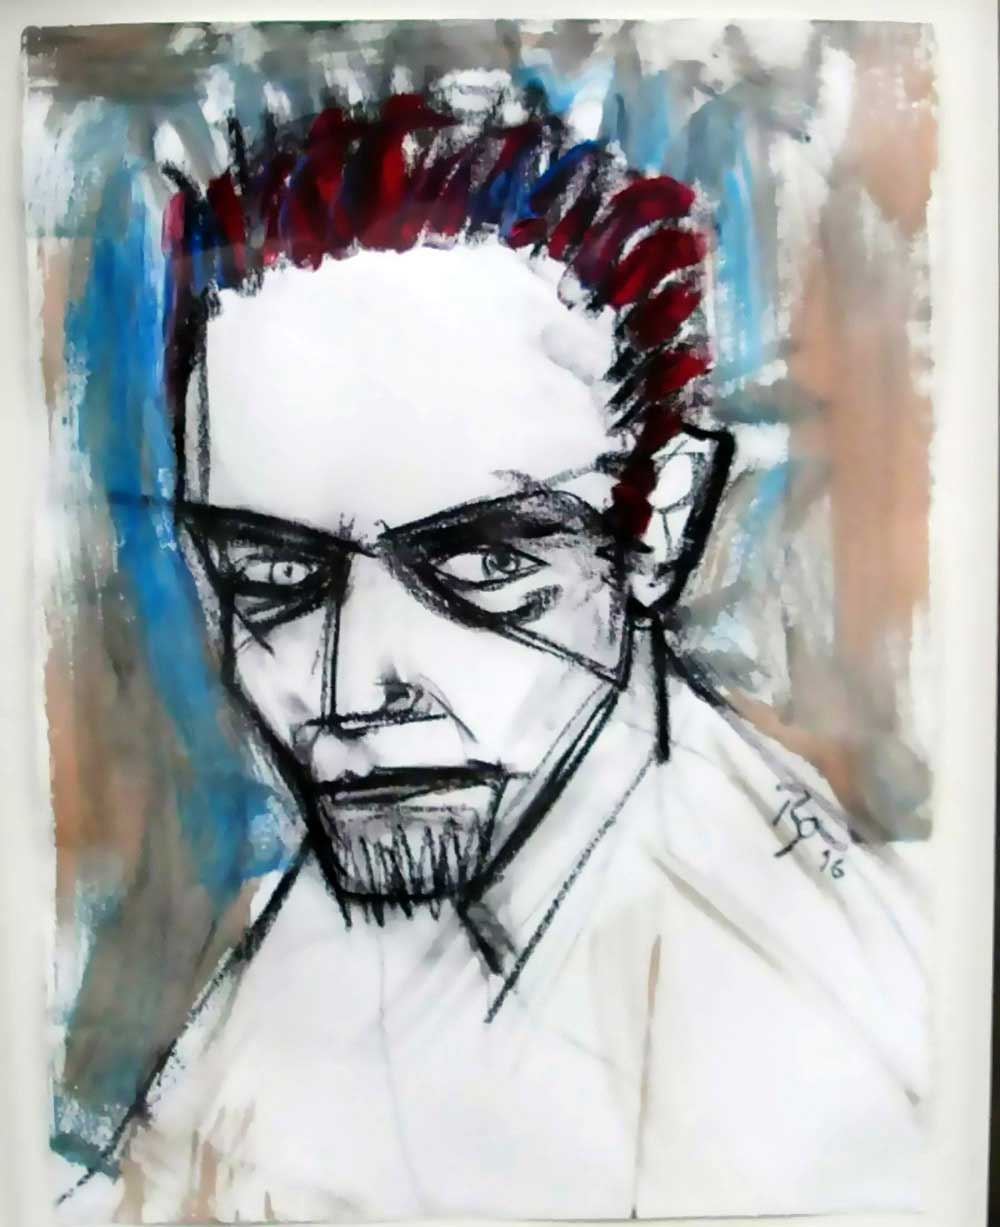 David Bowie paintings - Self portrait - 1996